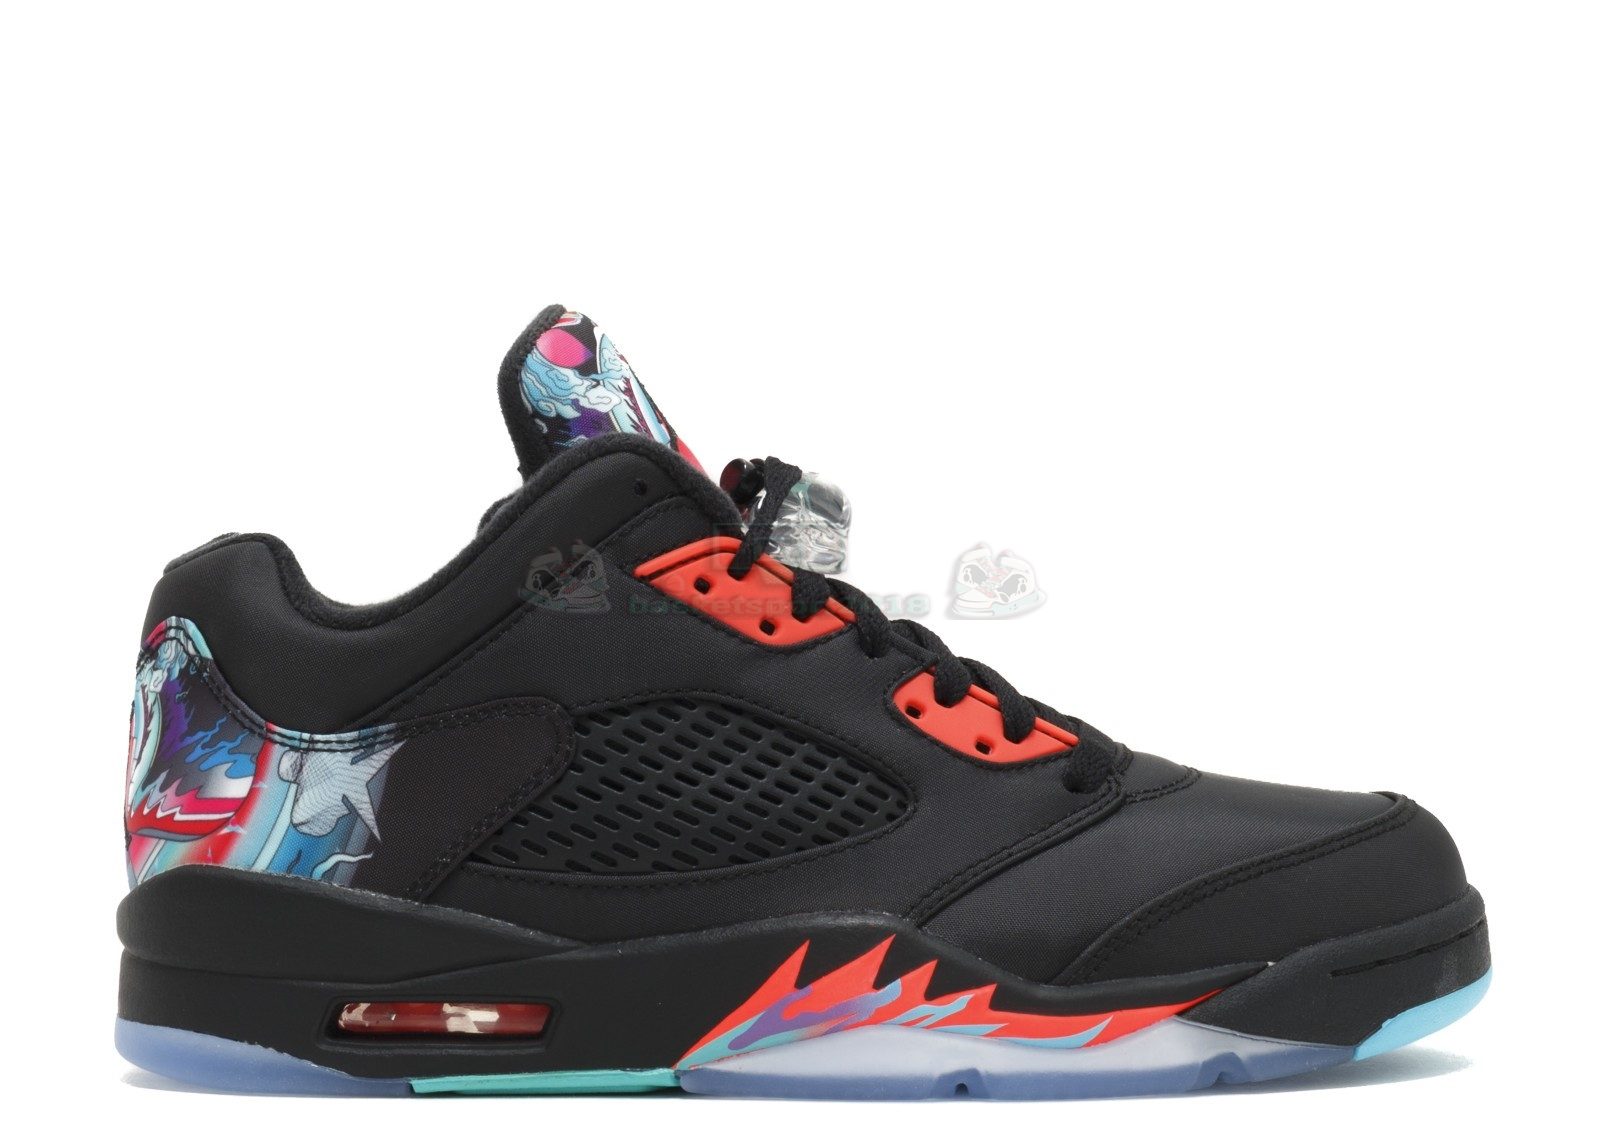 "Acheter Maintenant Pas Cher Homme - Air Jordan 5 Retro Low Cny ""Chinese New Year"" Noir (840475-060)"